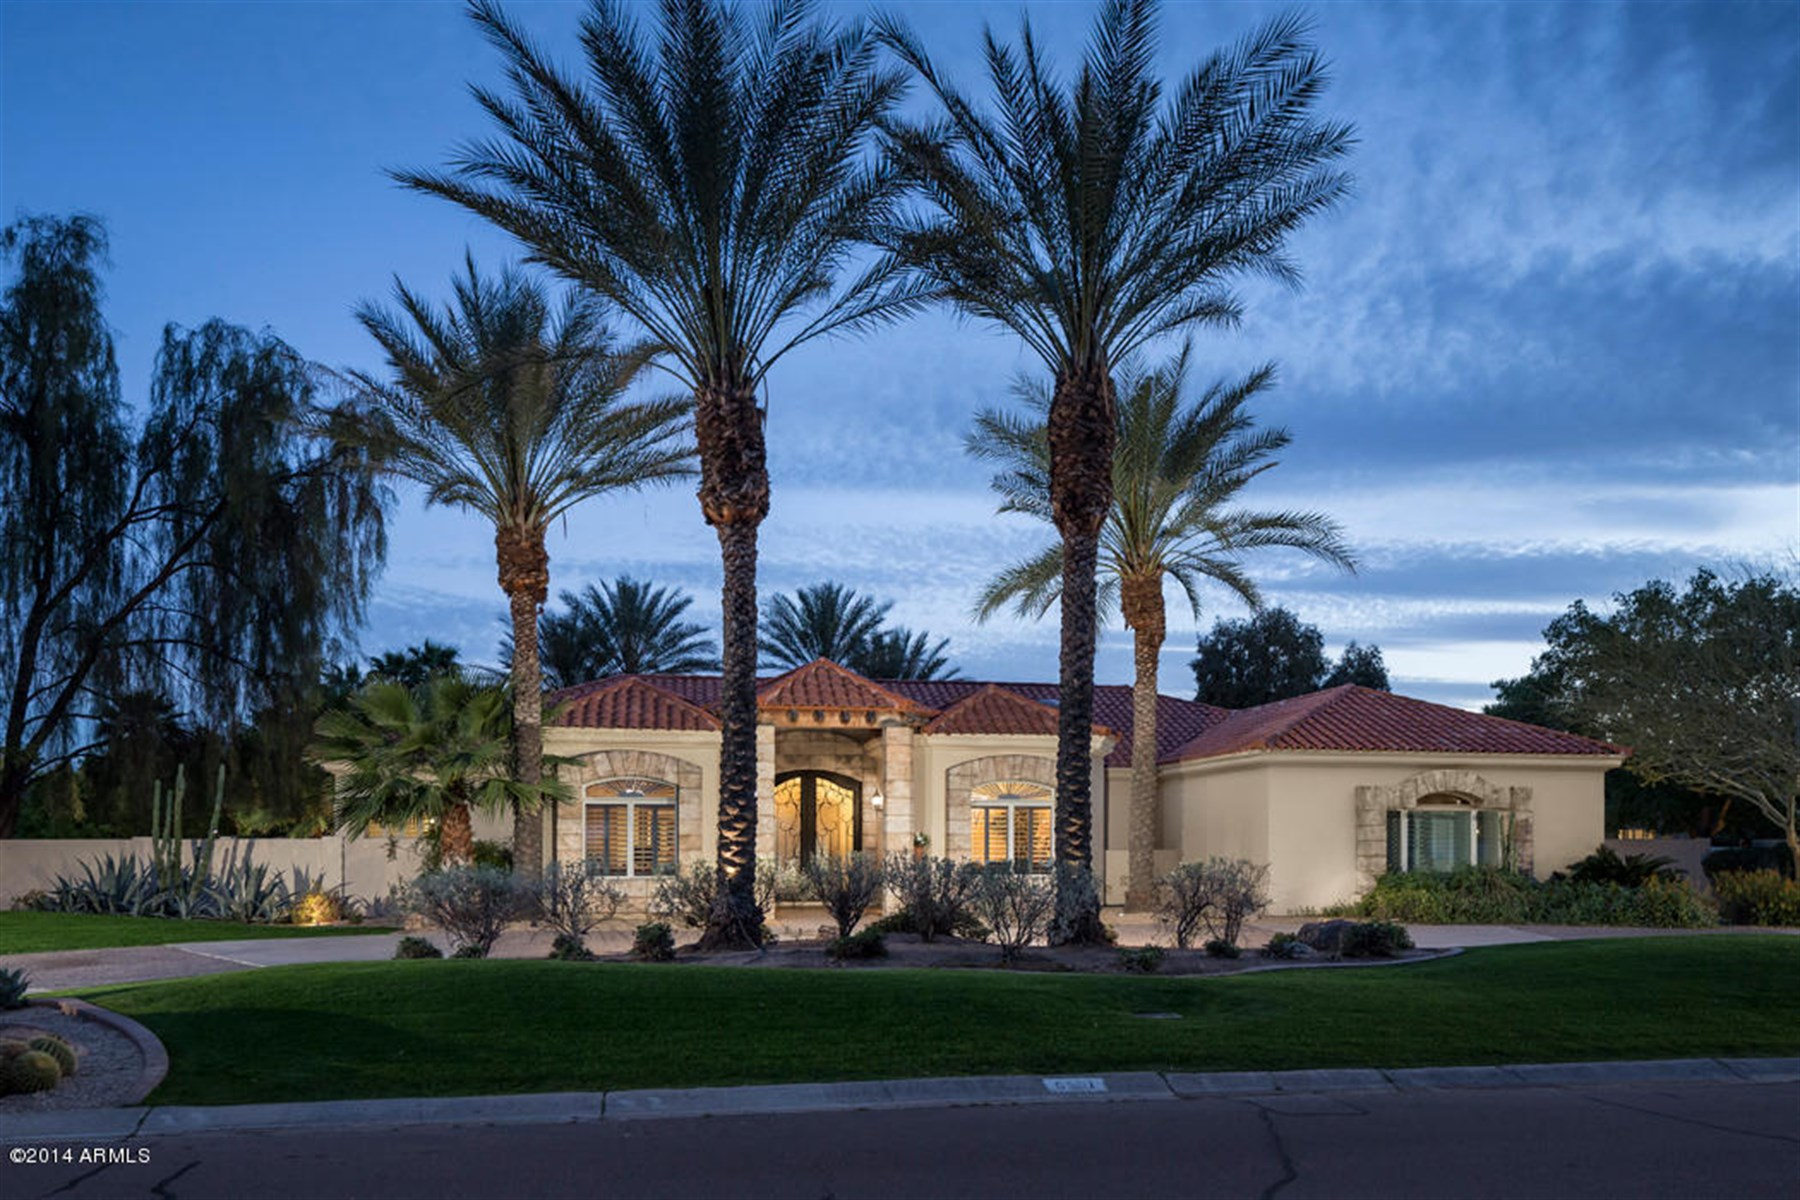 Casa Unifamiliar por un Venta en Beautifully updated home in Paradise Valley 6501 E Caron Dr Paradise Valley, Arizona, 85253 Estados Unidos